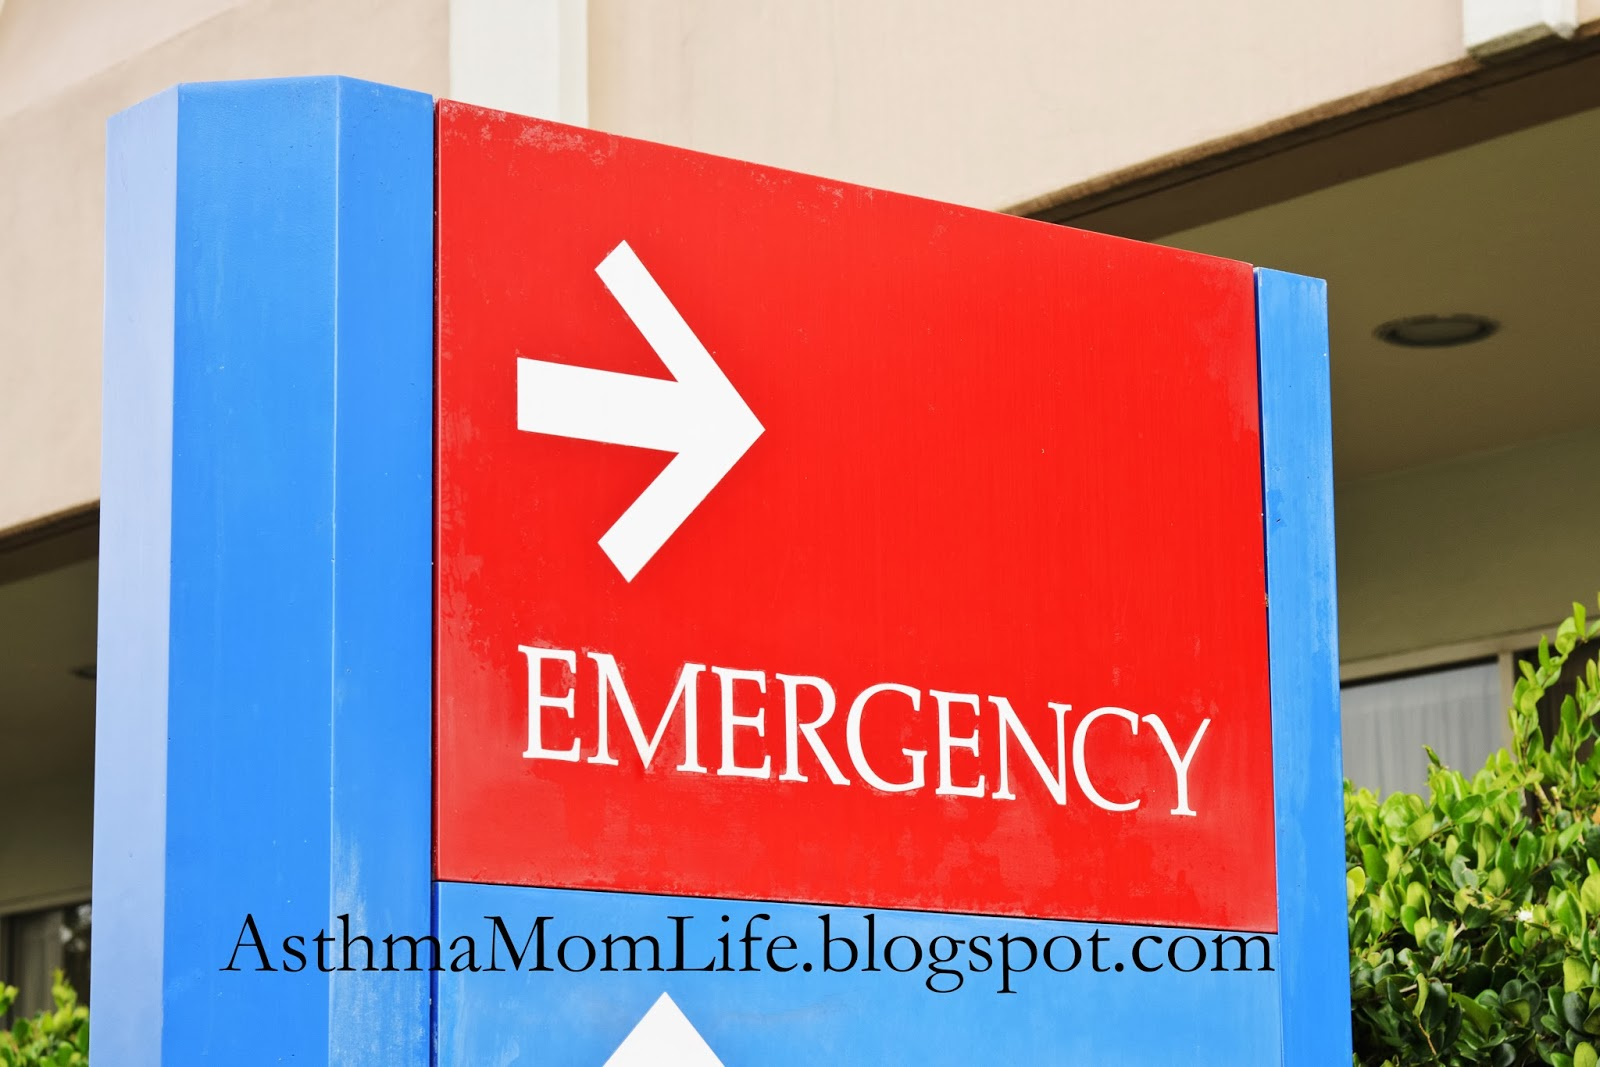 Discussion on this topic: When in Doubt, Go to the ER, when-in-doubt-go-to-the-er/